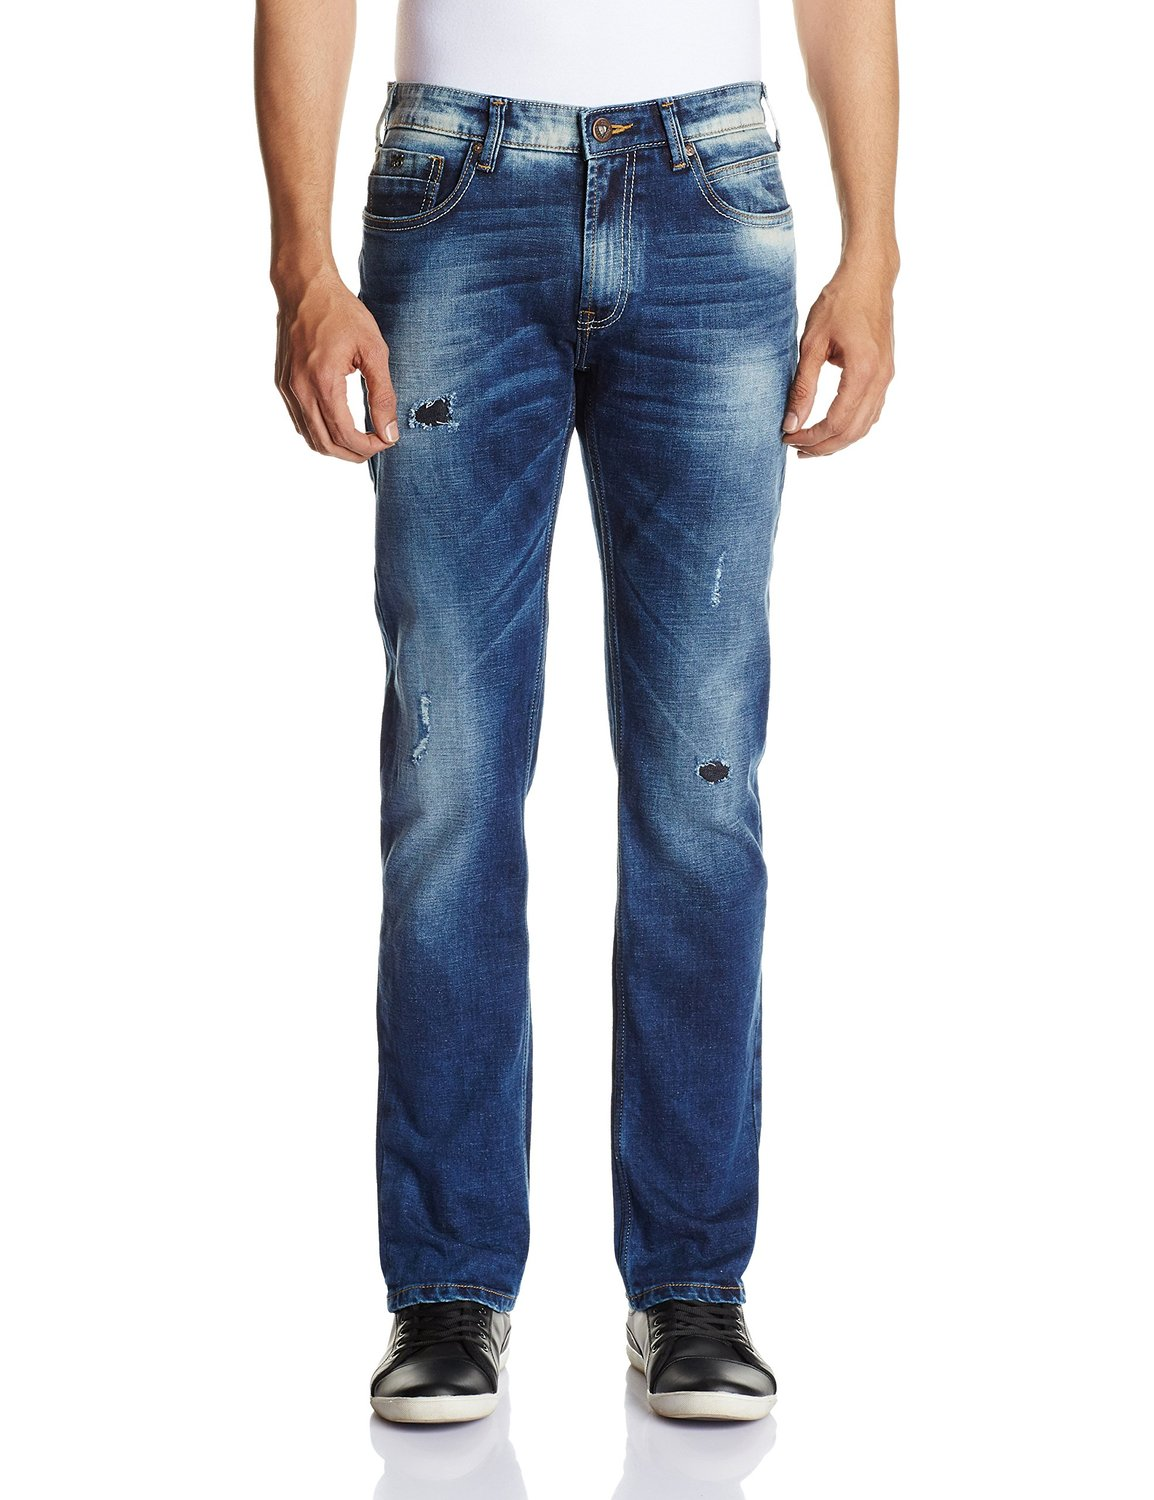 Pepe Jeans, Men's Jeans